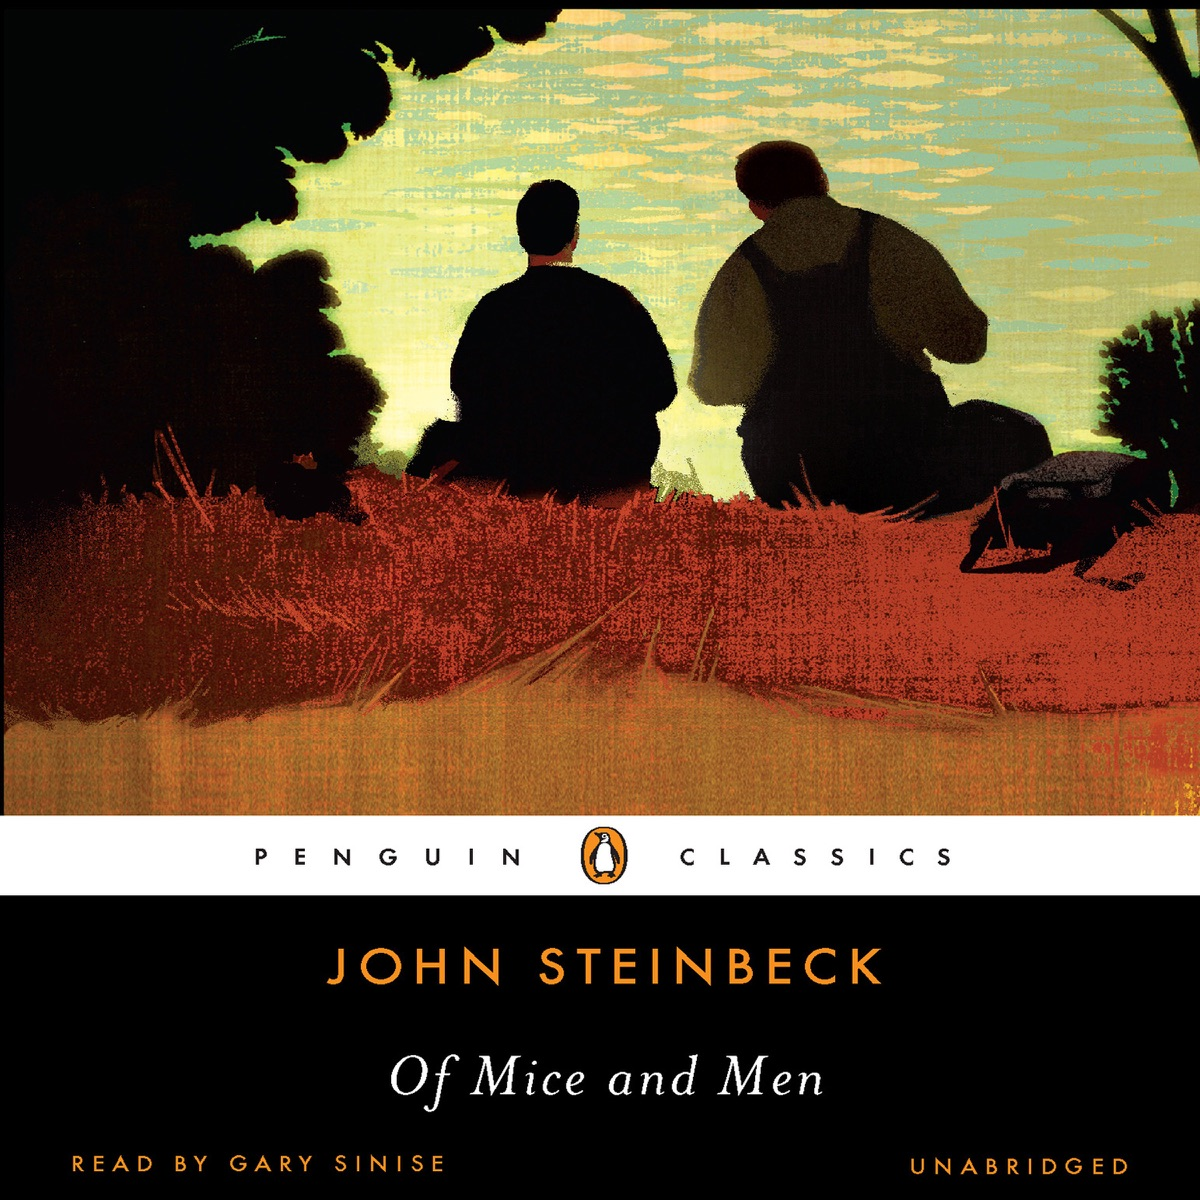 a review of john steinbecks of mice and men Of mice and men by john steinbeck is known as one of the author's most powerful novels even though the story is completely imaginary, the plot takes place in a very.